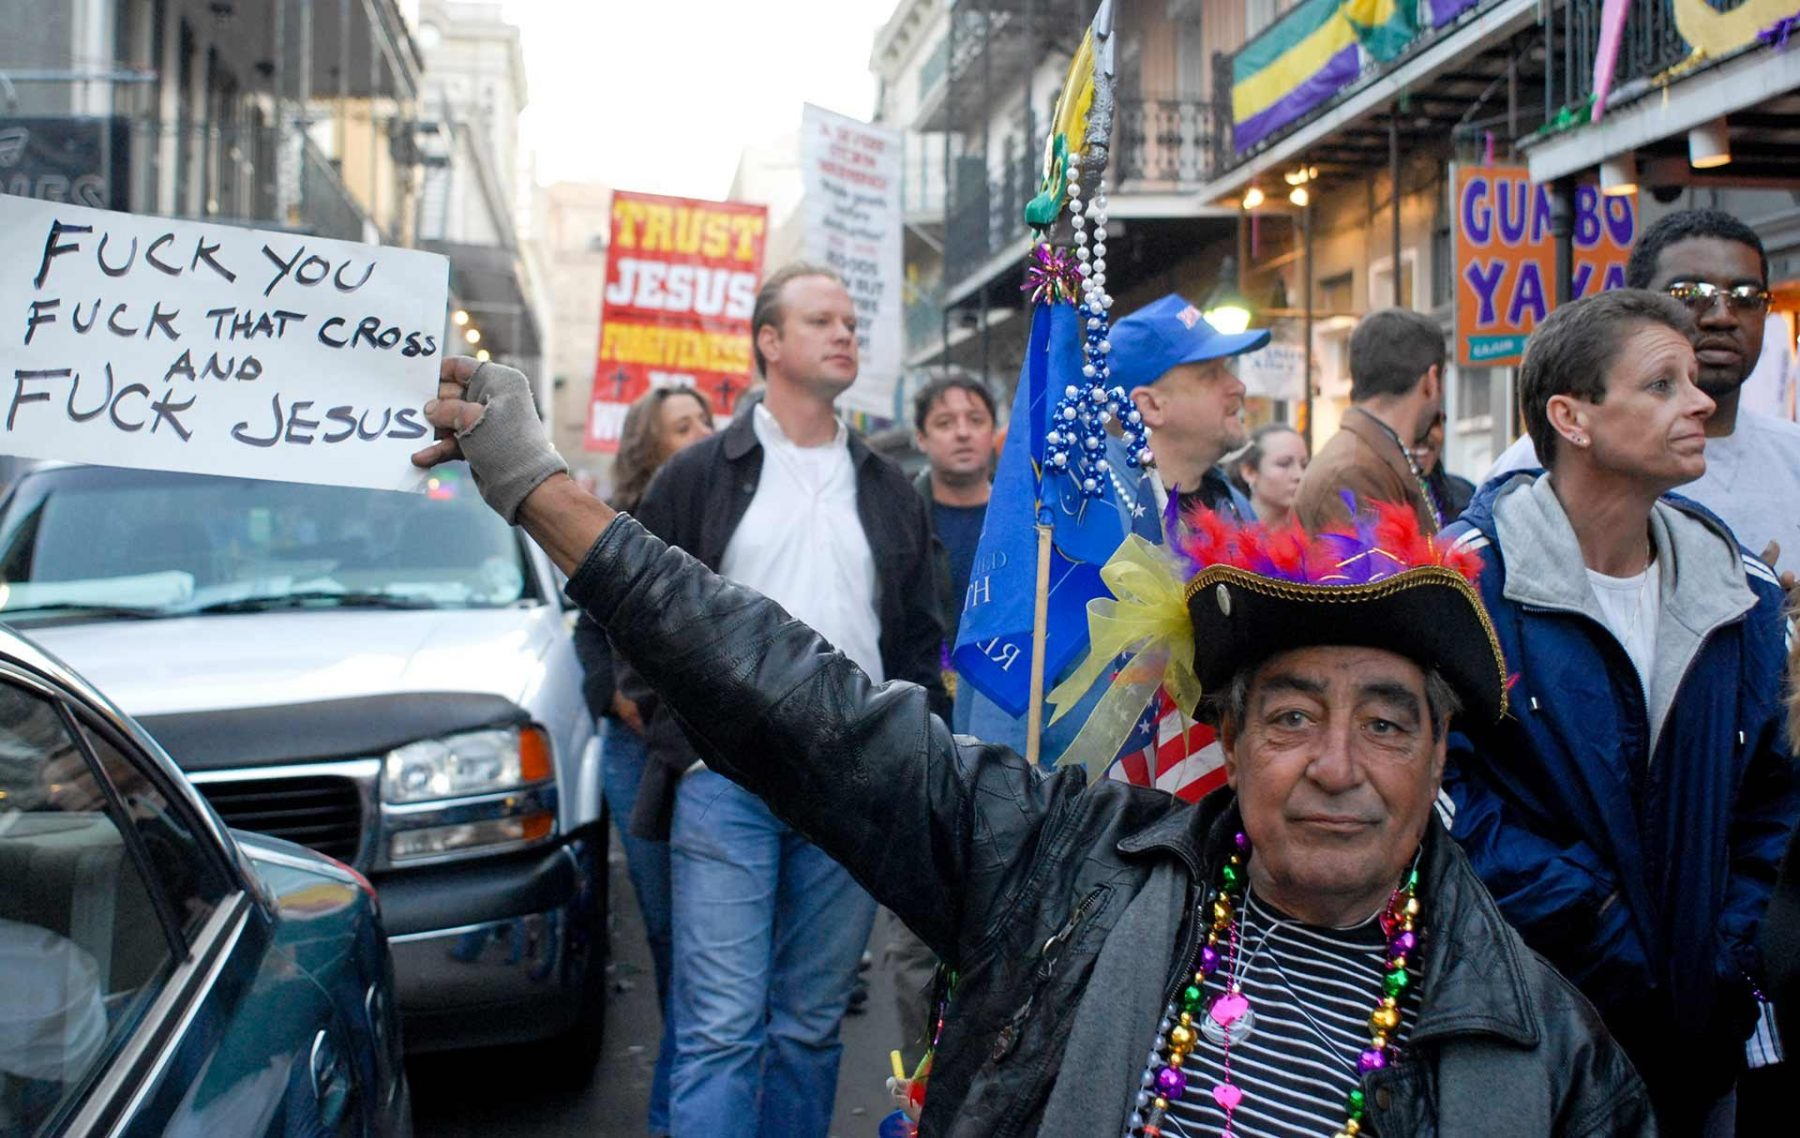 A man in a wheelchair with opinions about Christianity at Mardi Gras in New Orleans. USA